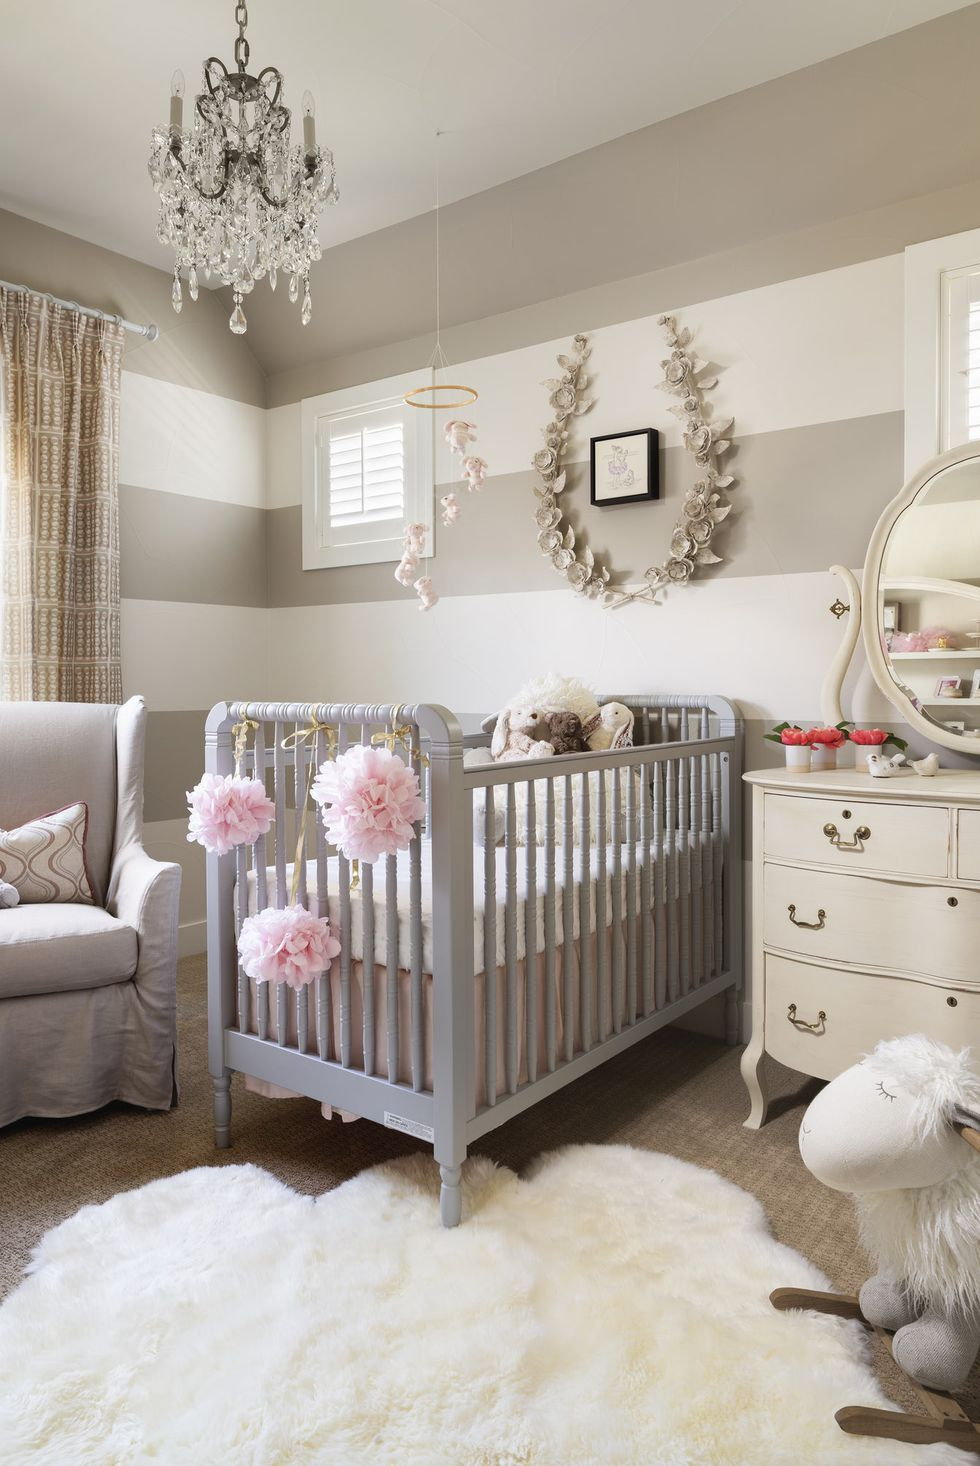 Best Stylish Baby Rooms Even Adults Would Adore Chic Baby 400 x 300